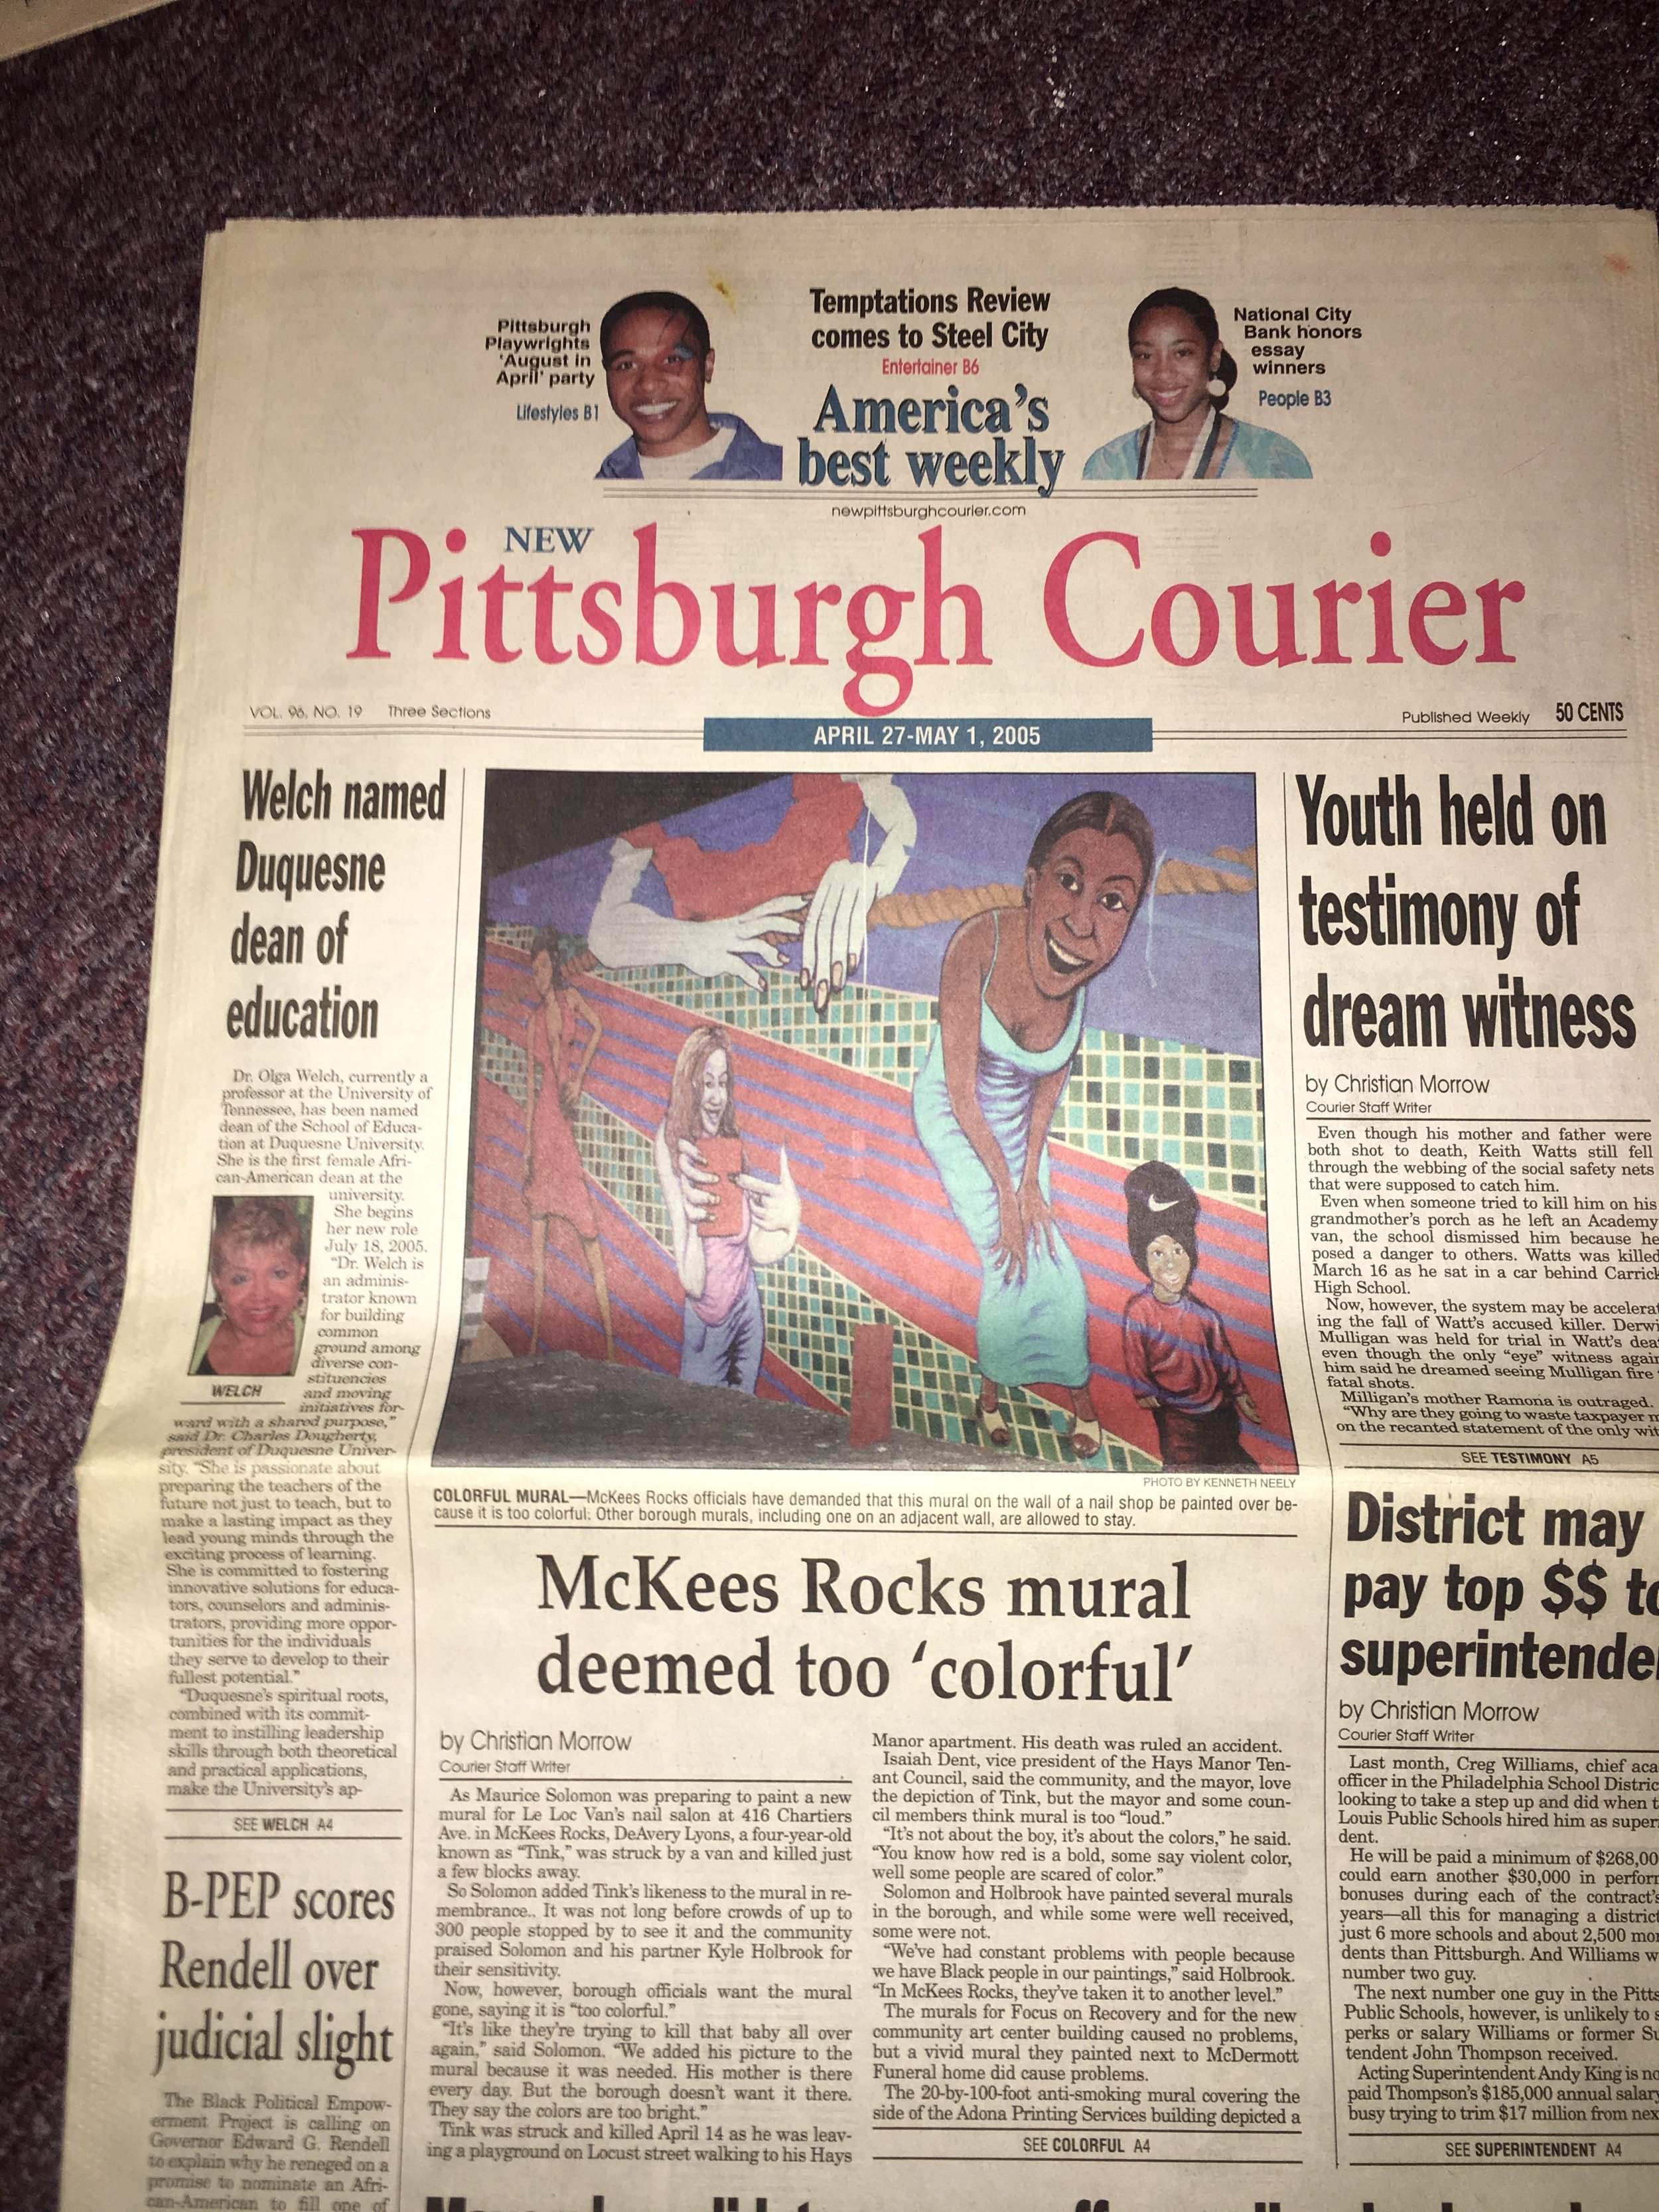 """Courier Cover Story of the mural MLK Mural artists painted in 2005 the Mayor of McKees Rocks attested to arrest artist Maurice Solomon and Kyle Holbrook they said there """"was too many Black people painted on the mural""""!"""